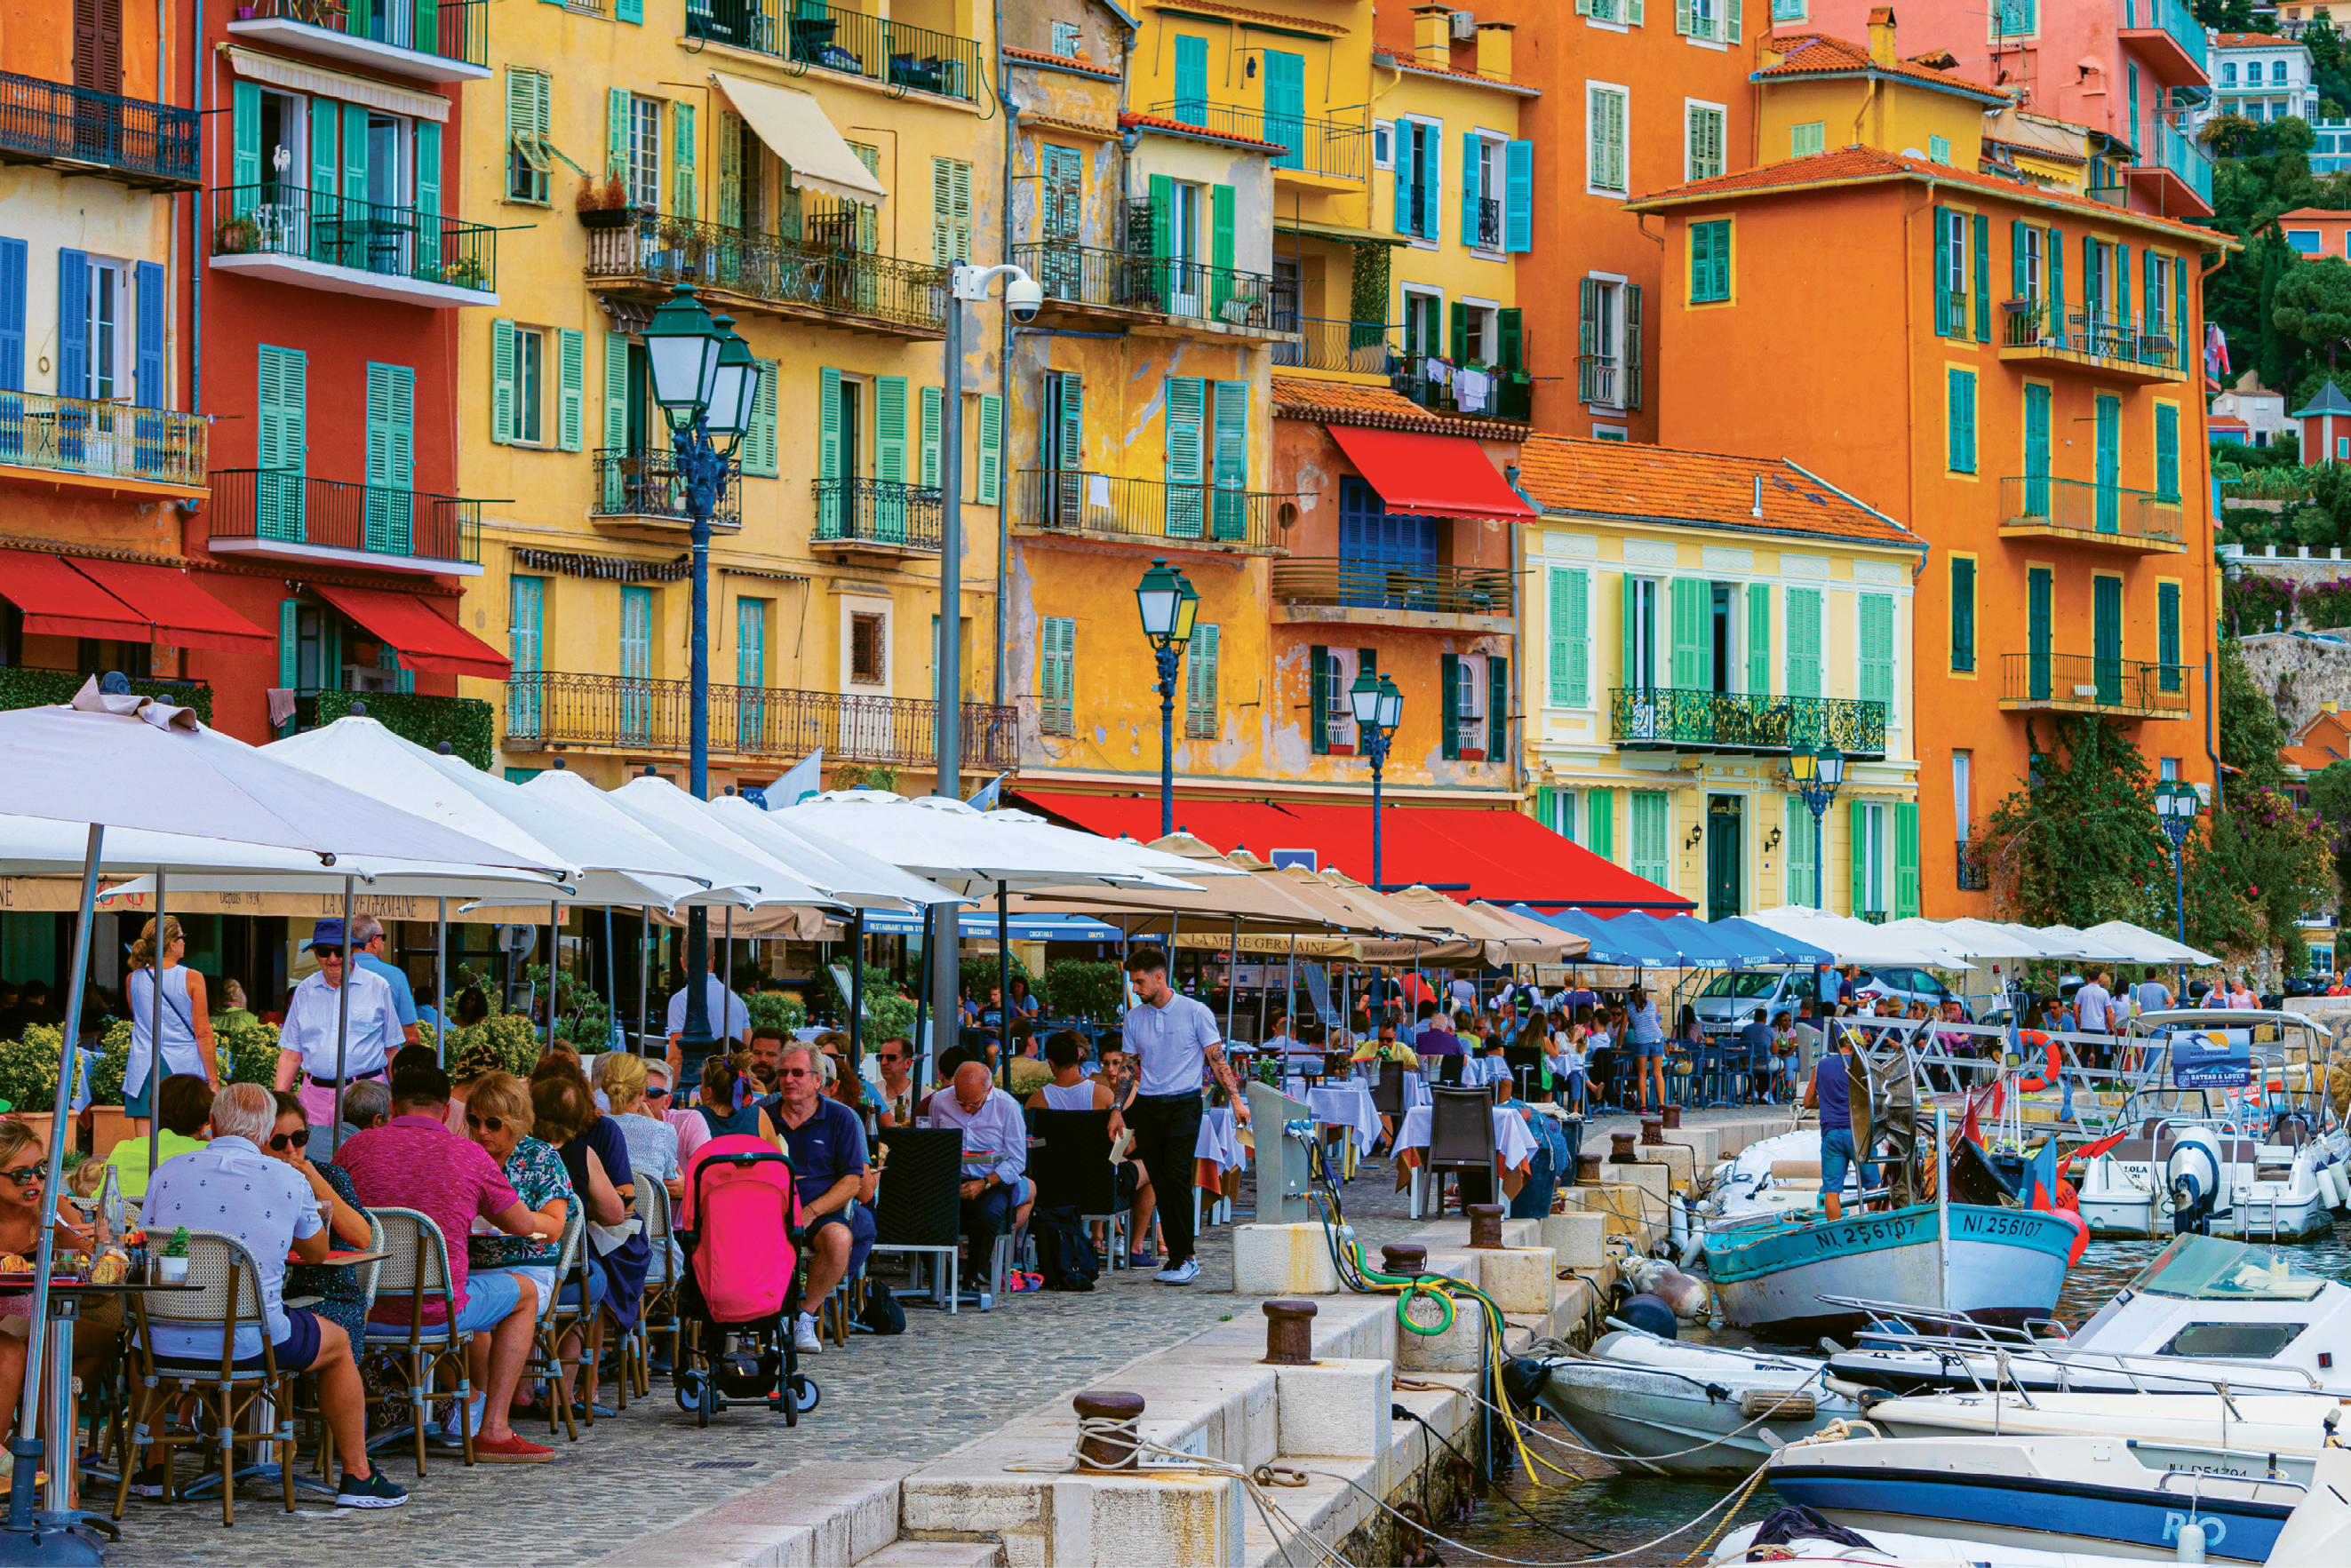 Basking in the seaside views of Villefranche-sur-Mer in all of its colorful glory